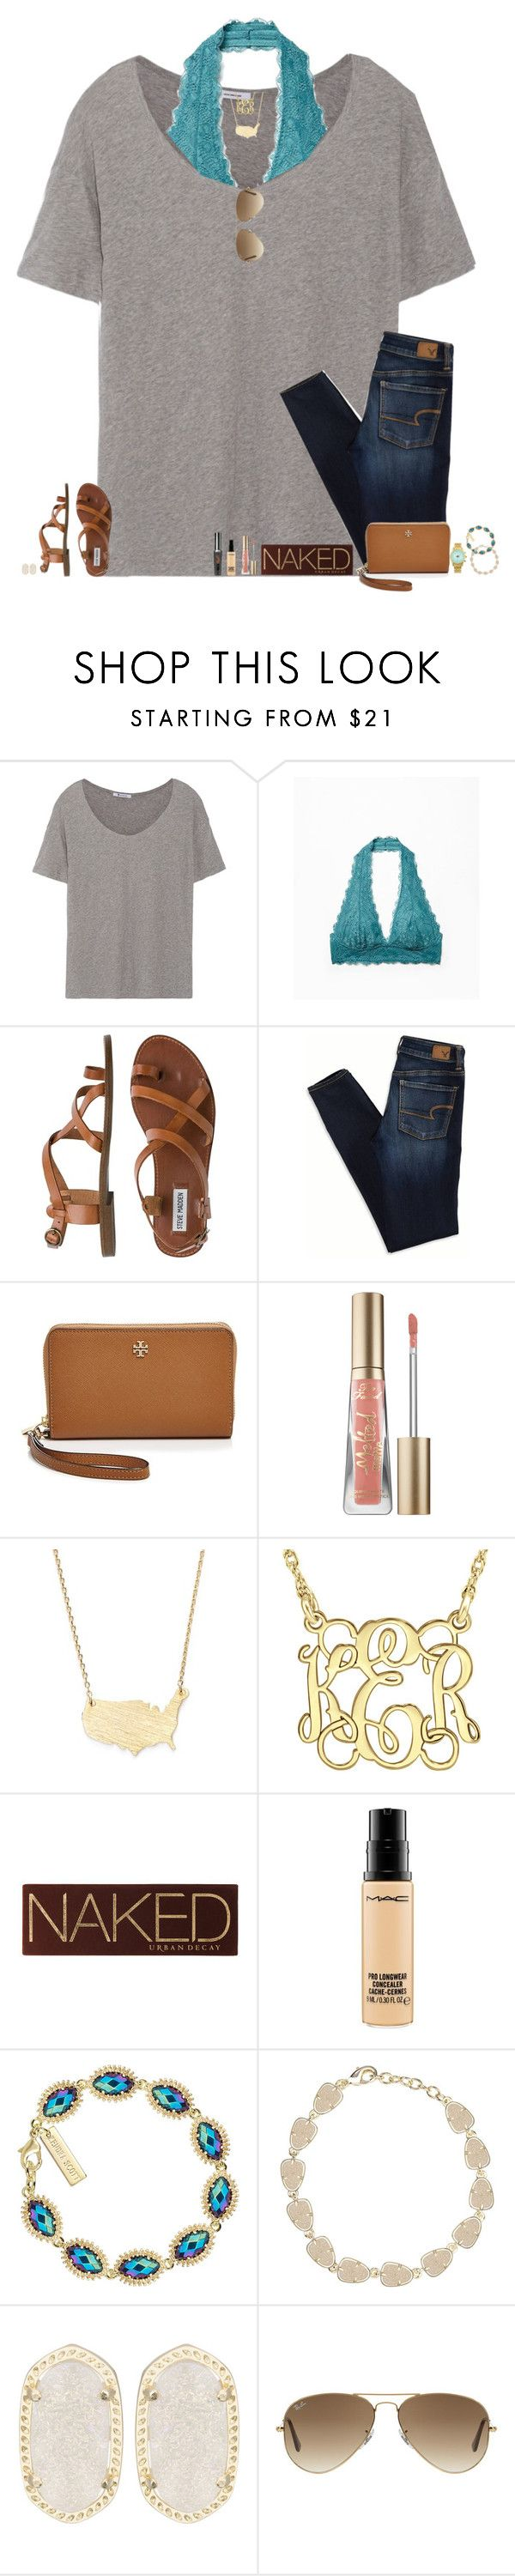 """""""Find me where wild things are▹"""" by maggie-prep ❤ liked on Polyvore featuring T By Alexander Wang, Free People, Steve Madden, American Eagle Outfitters, Tory Burch, Too Faced Cosmetics, Moon and Lola, Urban Decay, MAC Cosmetics and Kendra Scott"""